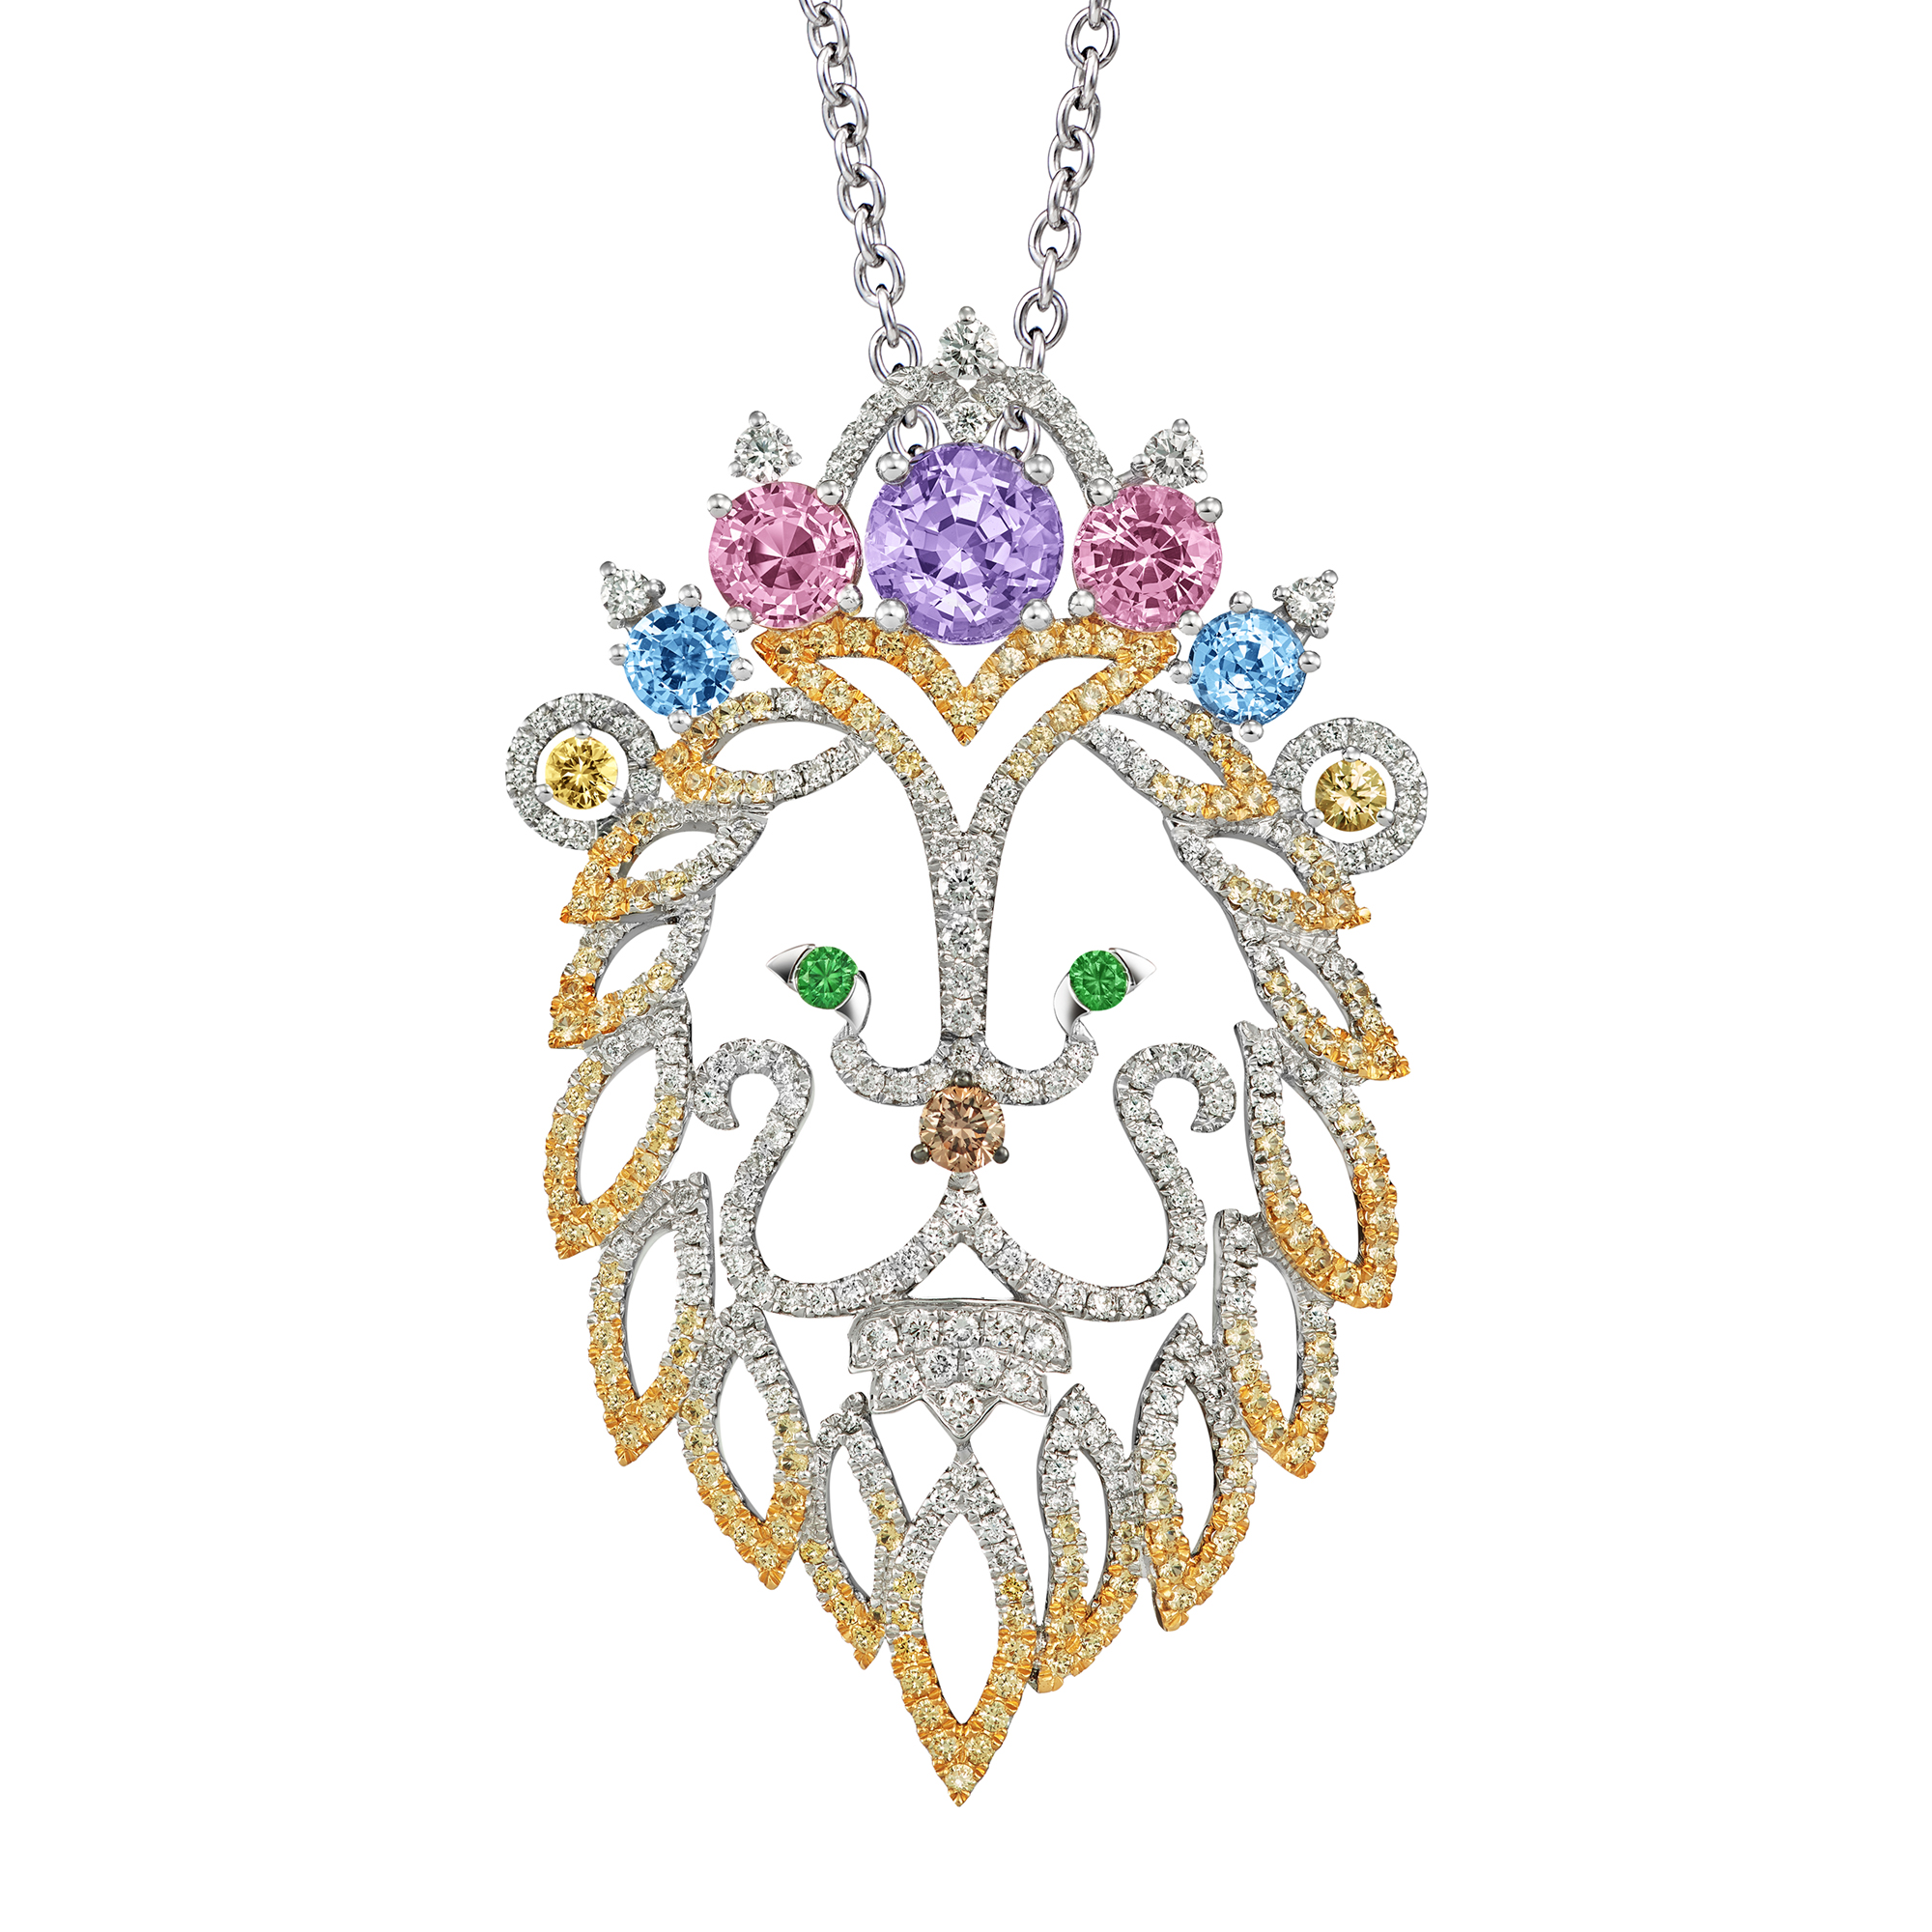 The Reigning Leo Pendant